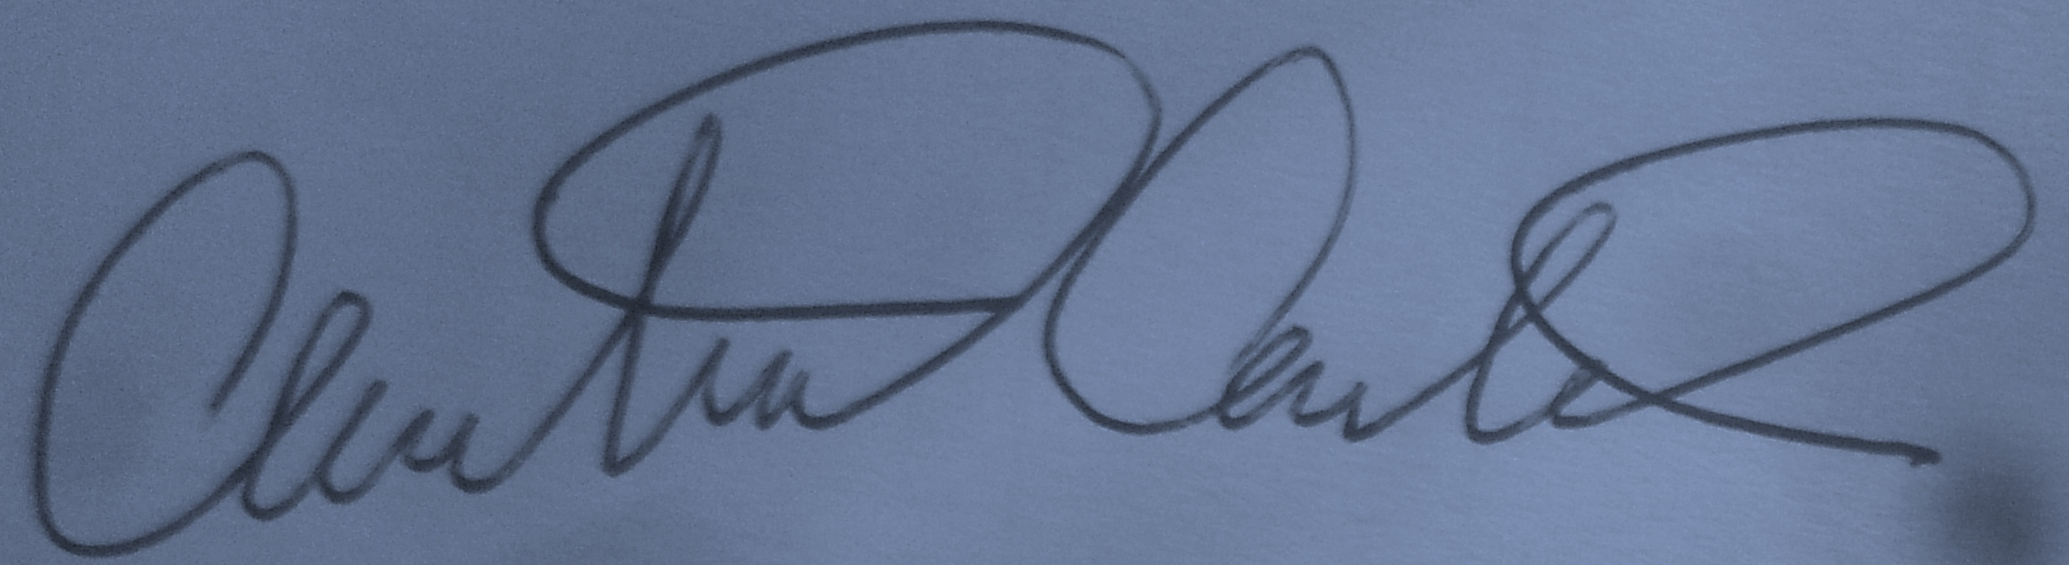 Chris Carter's Signature